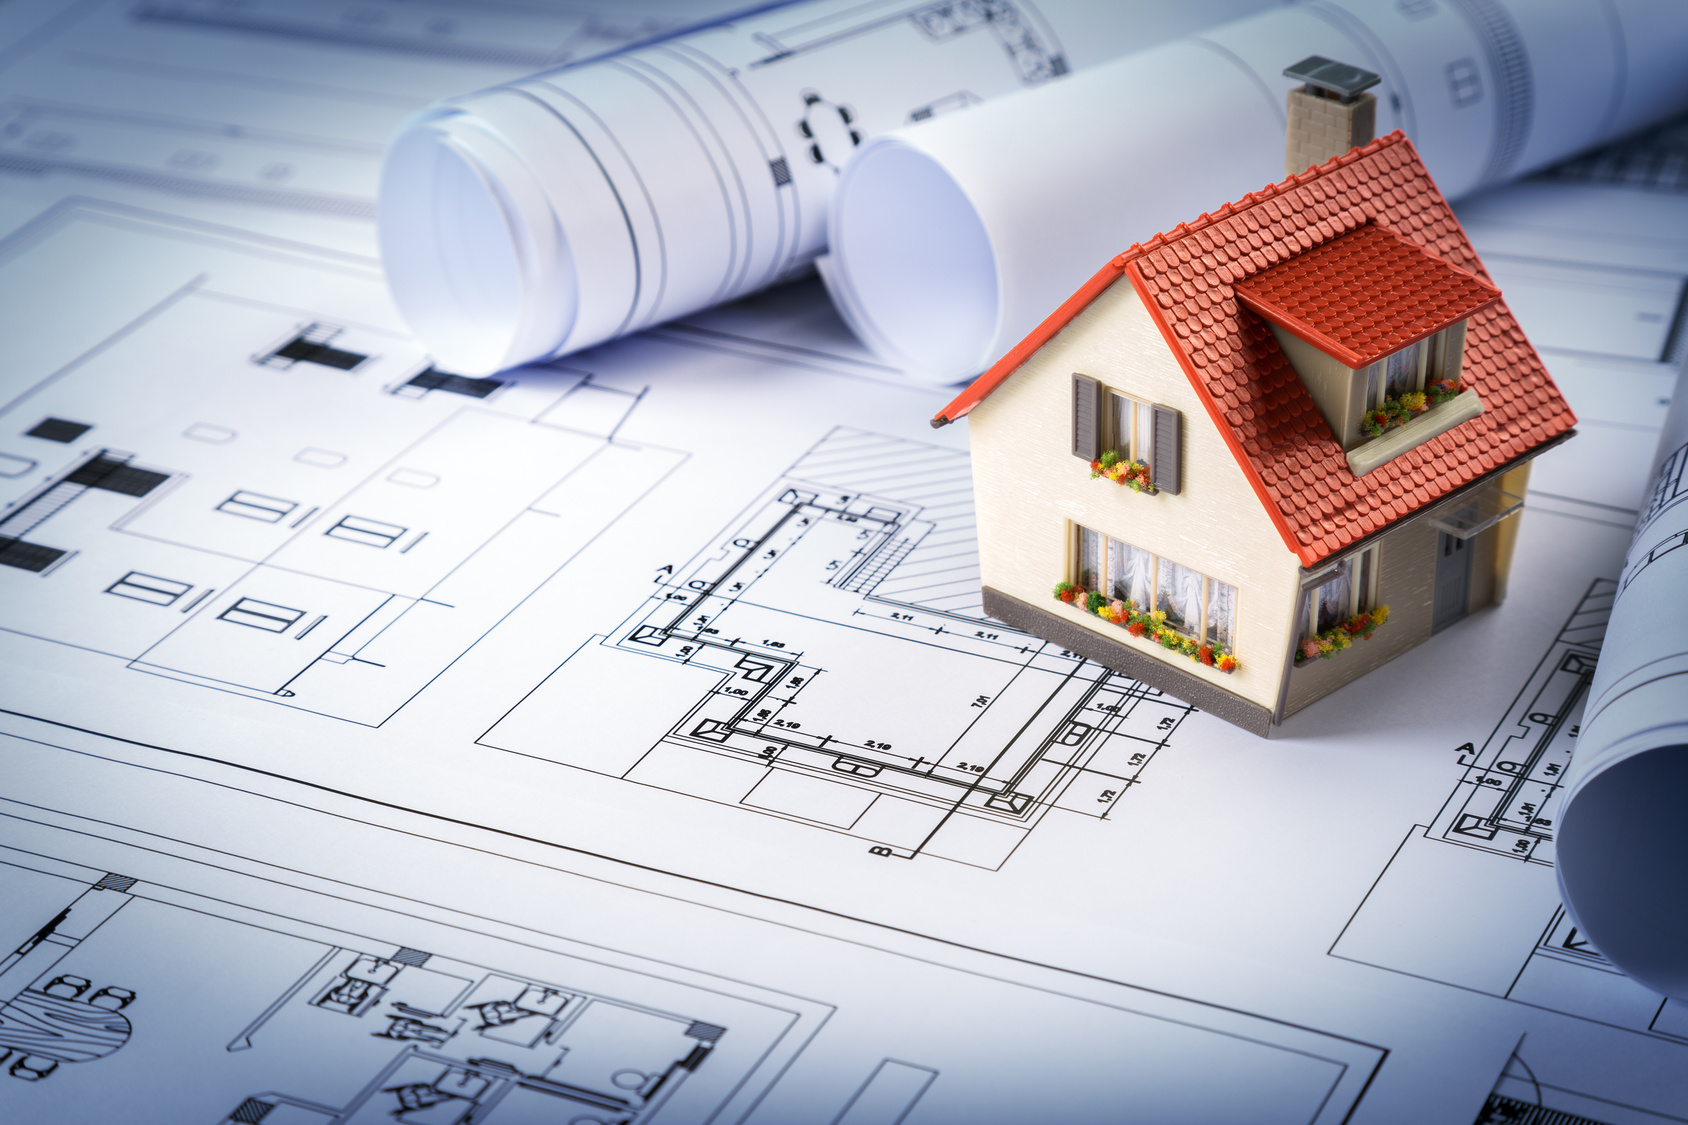 Le tarif pour faire r aliser les plans d 39 une maison les for Plan de maison en construction